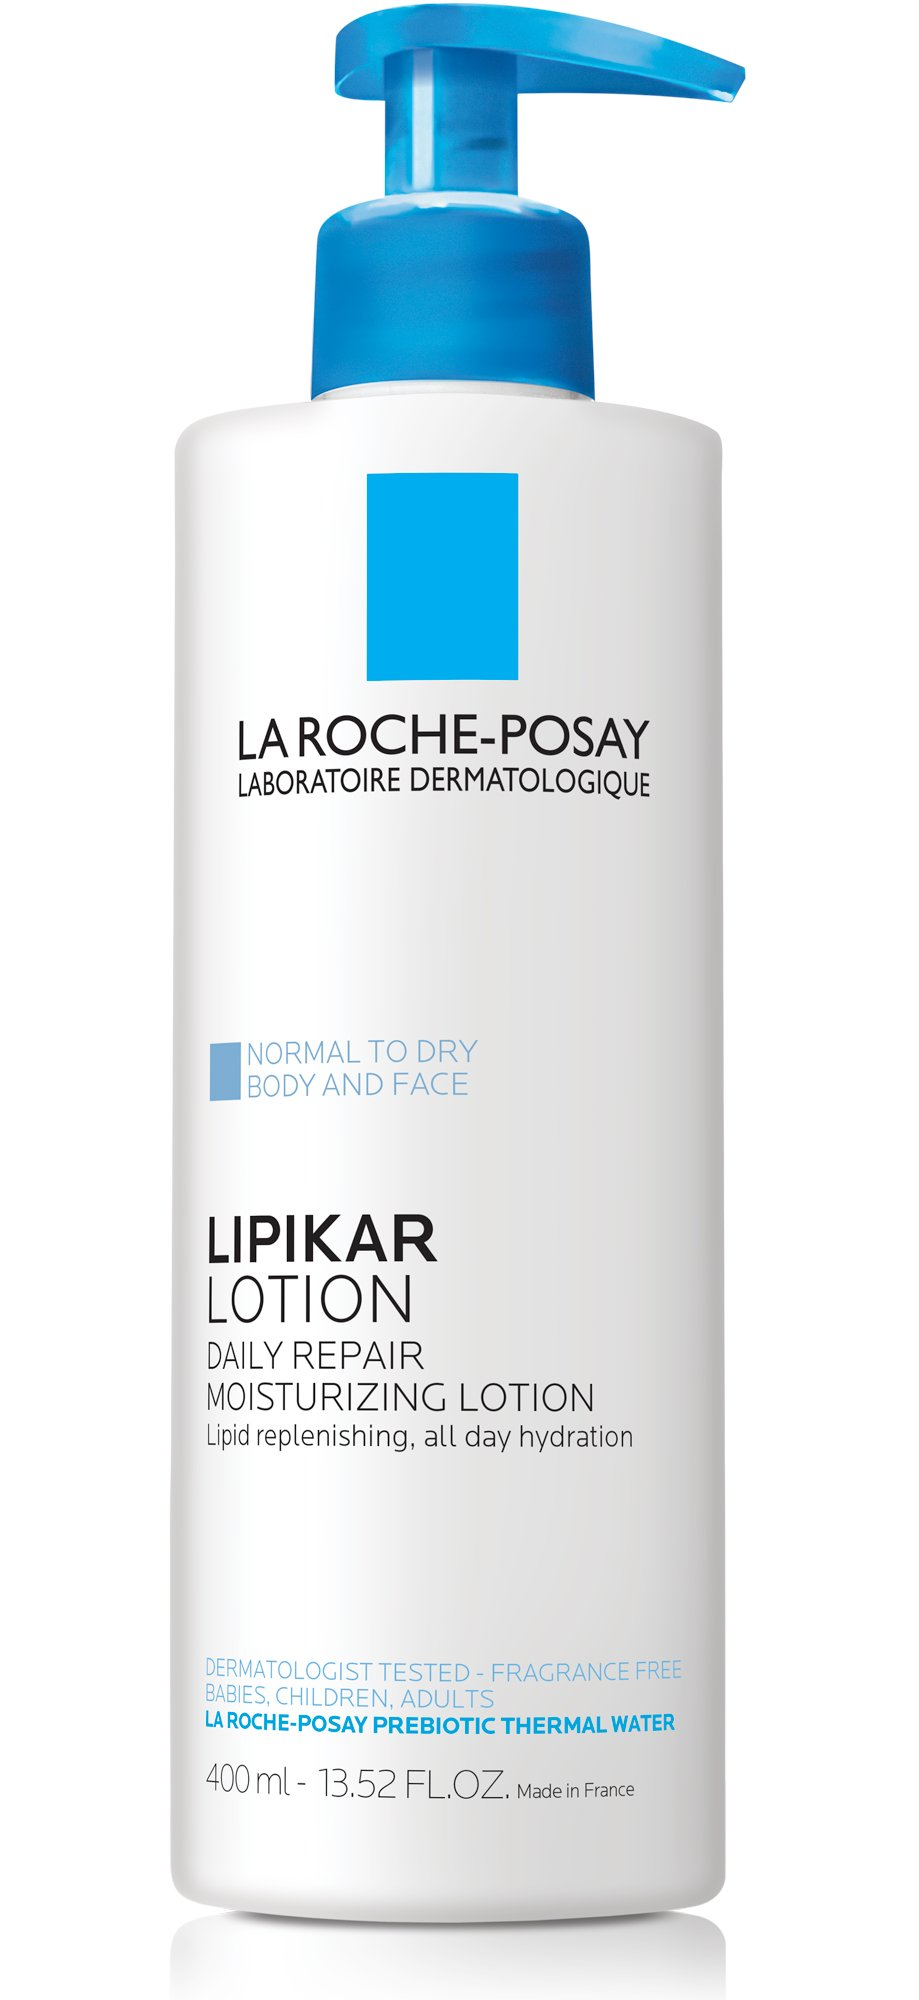 La Roche-Posay Lipikar Body Lotion for Normal to Dry Skin Daily Repair Moisturizing Lotion with Shea Butter and Glycerin, 13.52 Fl. Oz.